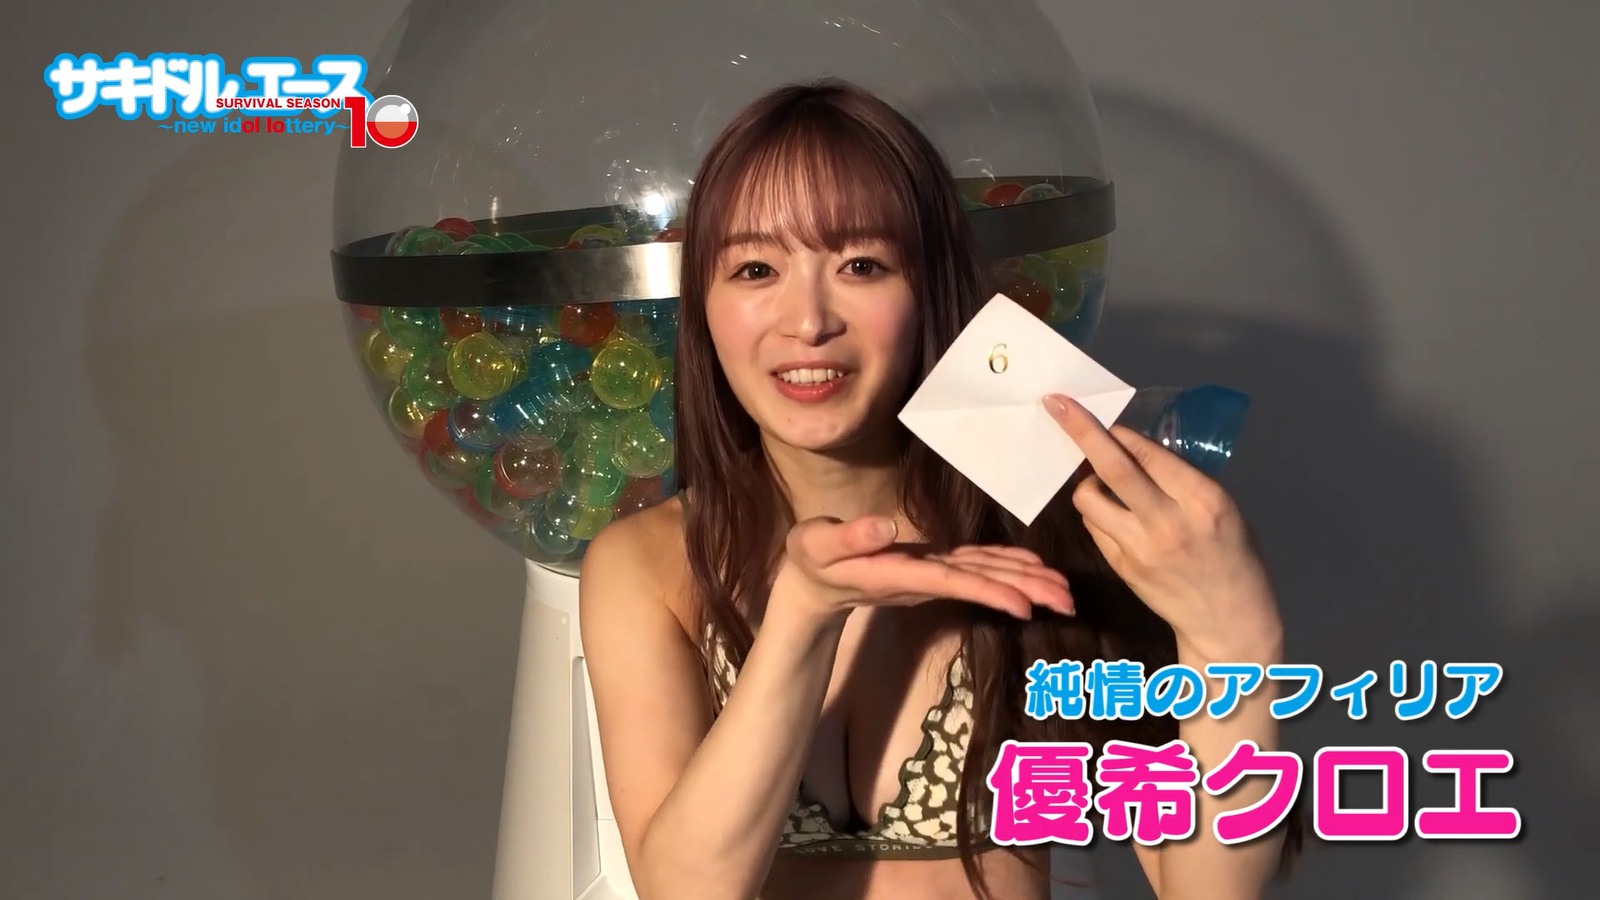 Sakidol Ace 10 Introduction Movie Capture of Swimsuit131